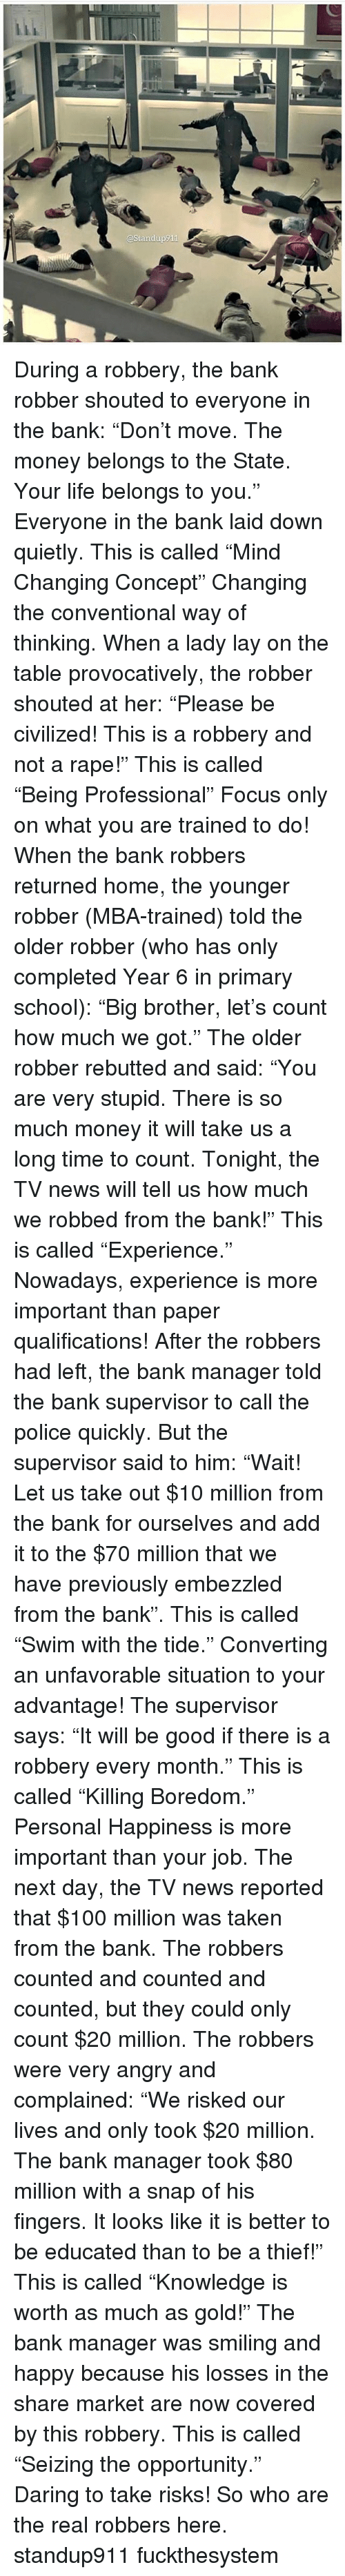 """Rapeing: @Standup911 During a robbery, the bank robber shouted to everyone in the bank: """"Don't move. The money belongs to the State. Your life belongs to you."""" Everyone in the bank laid down quietly. This is called """"Mind Changing Concept"""" Changing the conventional way of thinking. When a lady lay on the table provocatively, the robber shouted at her: """"Please be civilized! This is a robbery and not a rape!"""" This is called """"Being Professional"""" Focus only on what you are trained to do! When the bank robbers returned home, the younger robber (MBA-trained) told the older robber (who has only completed Year 6 in primary school): """"Big brother, let's count how much we got."""" The older robber rebutted and said: """"You are very stupid. There is so much money it will take us a long time to count. Tonight, the TV news will tell us how much we robbed from the bank!"""" This is called """"Experience."""" Nowadays, experience is more important than paper qualifications! After the robbers had left, the bank manager told the bank supervisor to call the police quickly. But the supervisor said to him: """"Wait! Let us take out $10 million from the bank for ourselves and add it to the $70 million that we have previously embezzled from the bank"""". This is called """"Swim with the tide."""" Converting an unfavorable situation to your advantage! The supervisor says: """"It will be good if there is a robbery every month."""" This is called """"Killing Boredom."""" Personal Happiness is more important than your job. The next day, the TV news reported that $100 million was taken from the bank. The robbers counted and counted and counted, but they could only count $20 million. The robbers were very angry and complained: """"We risked our lives and only took $20 million. The bank manager took $80 million with a snap of his fingers. It looks like it is better to be educated than to be a thief!"""" This is called """"Knowledge is worth as much as gold!"""" The bank manager was smiling and happy because his losses in the share market are now"""